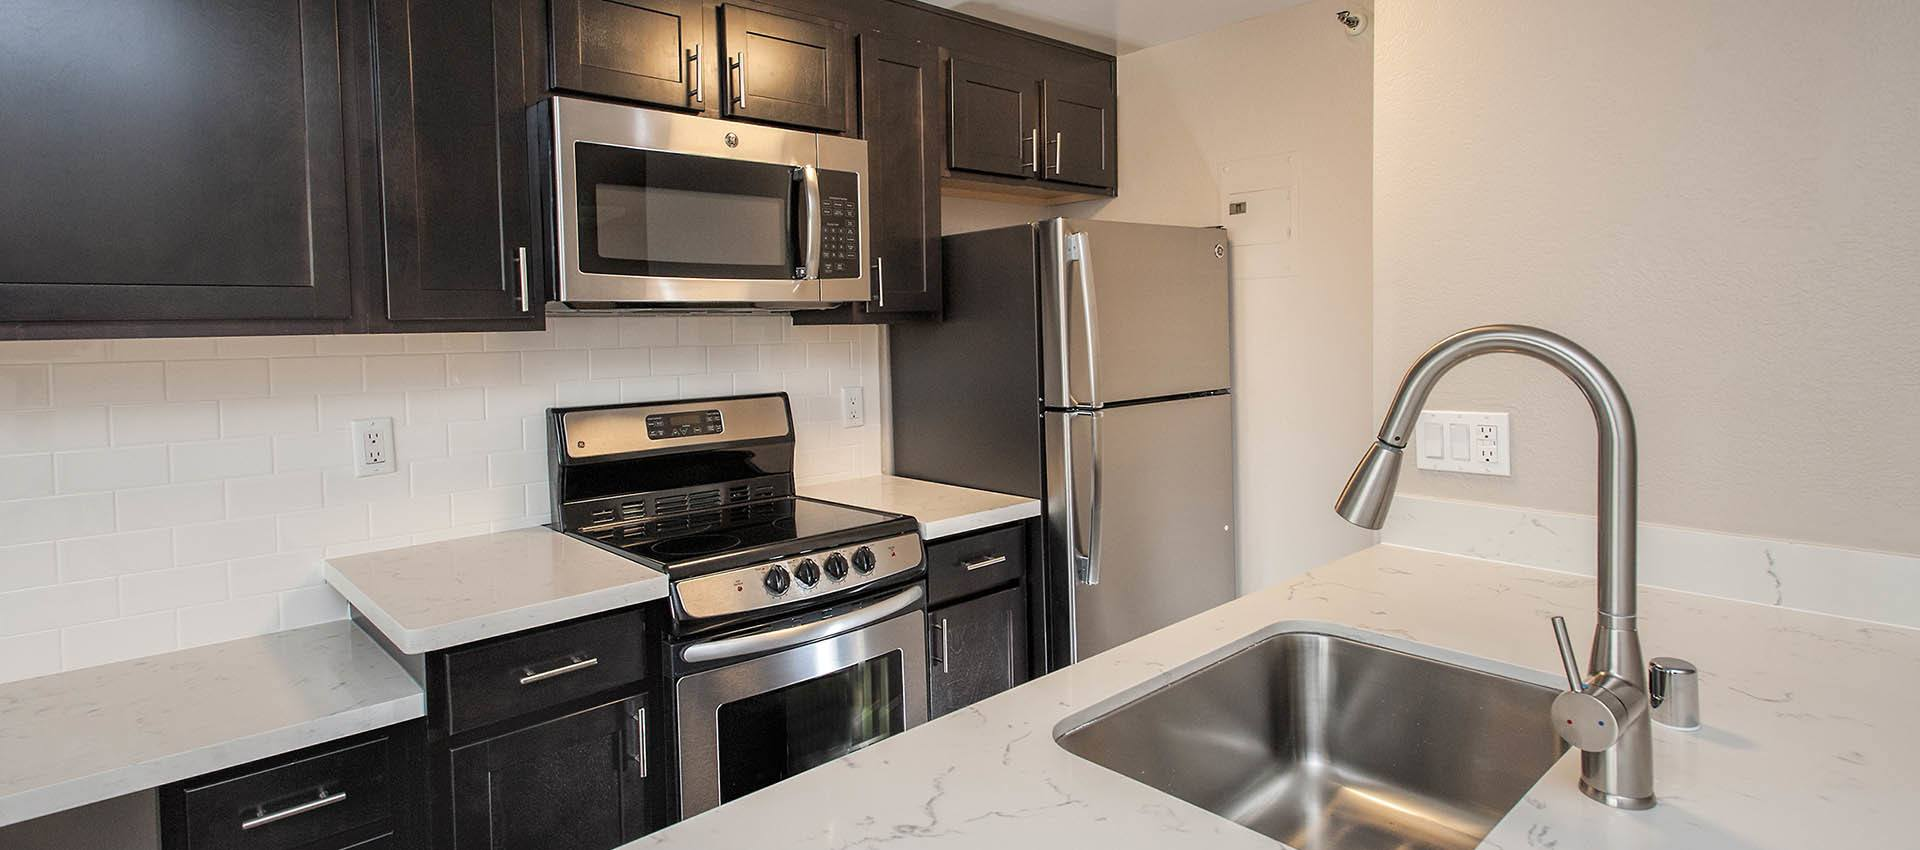 Luxury Kitchen With Dark Wood Cabinets at Tower 737 Condominium Rentals in San Francisco